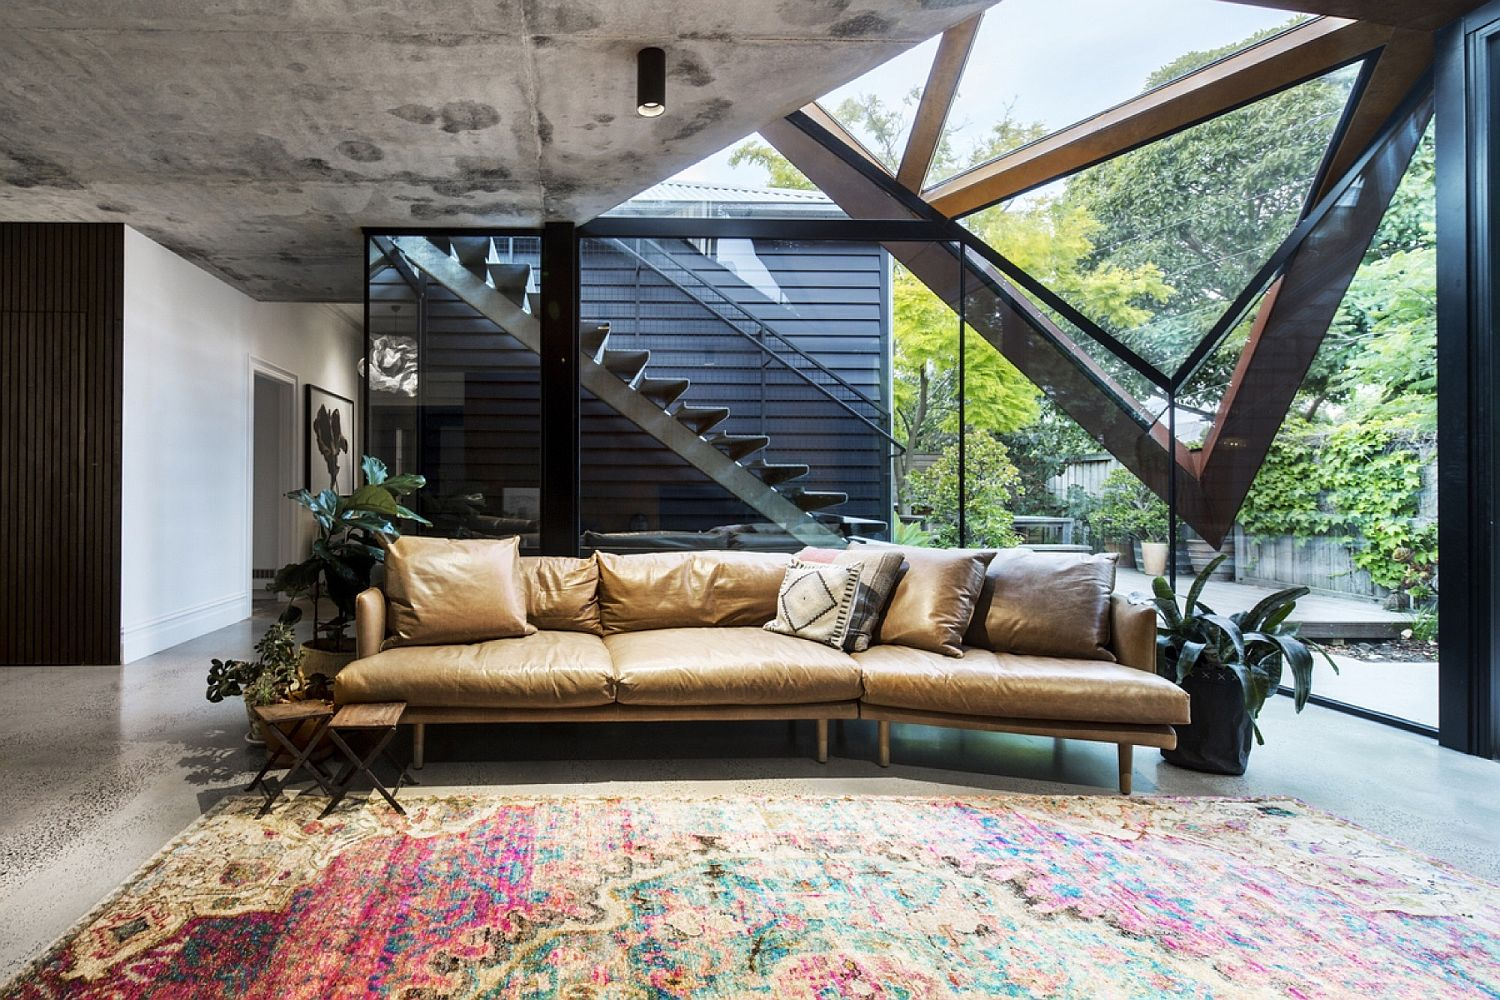 Plush-couch-and-colorful-rug-for-the-glassy-lounge